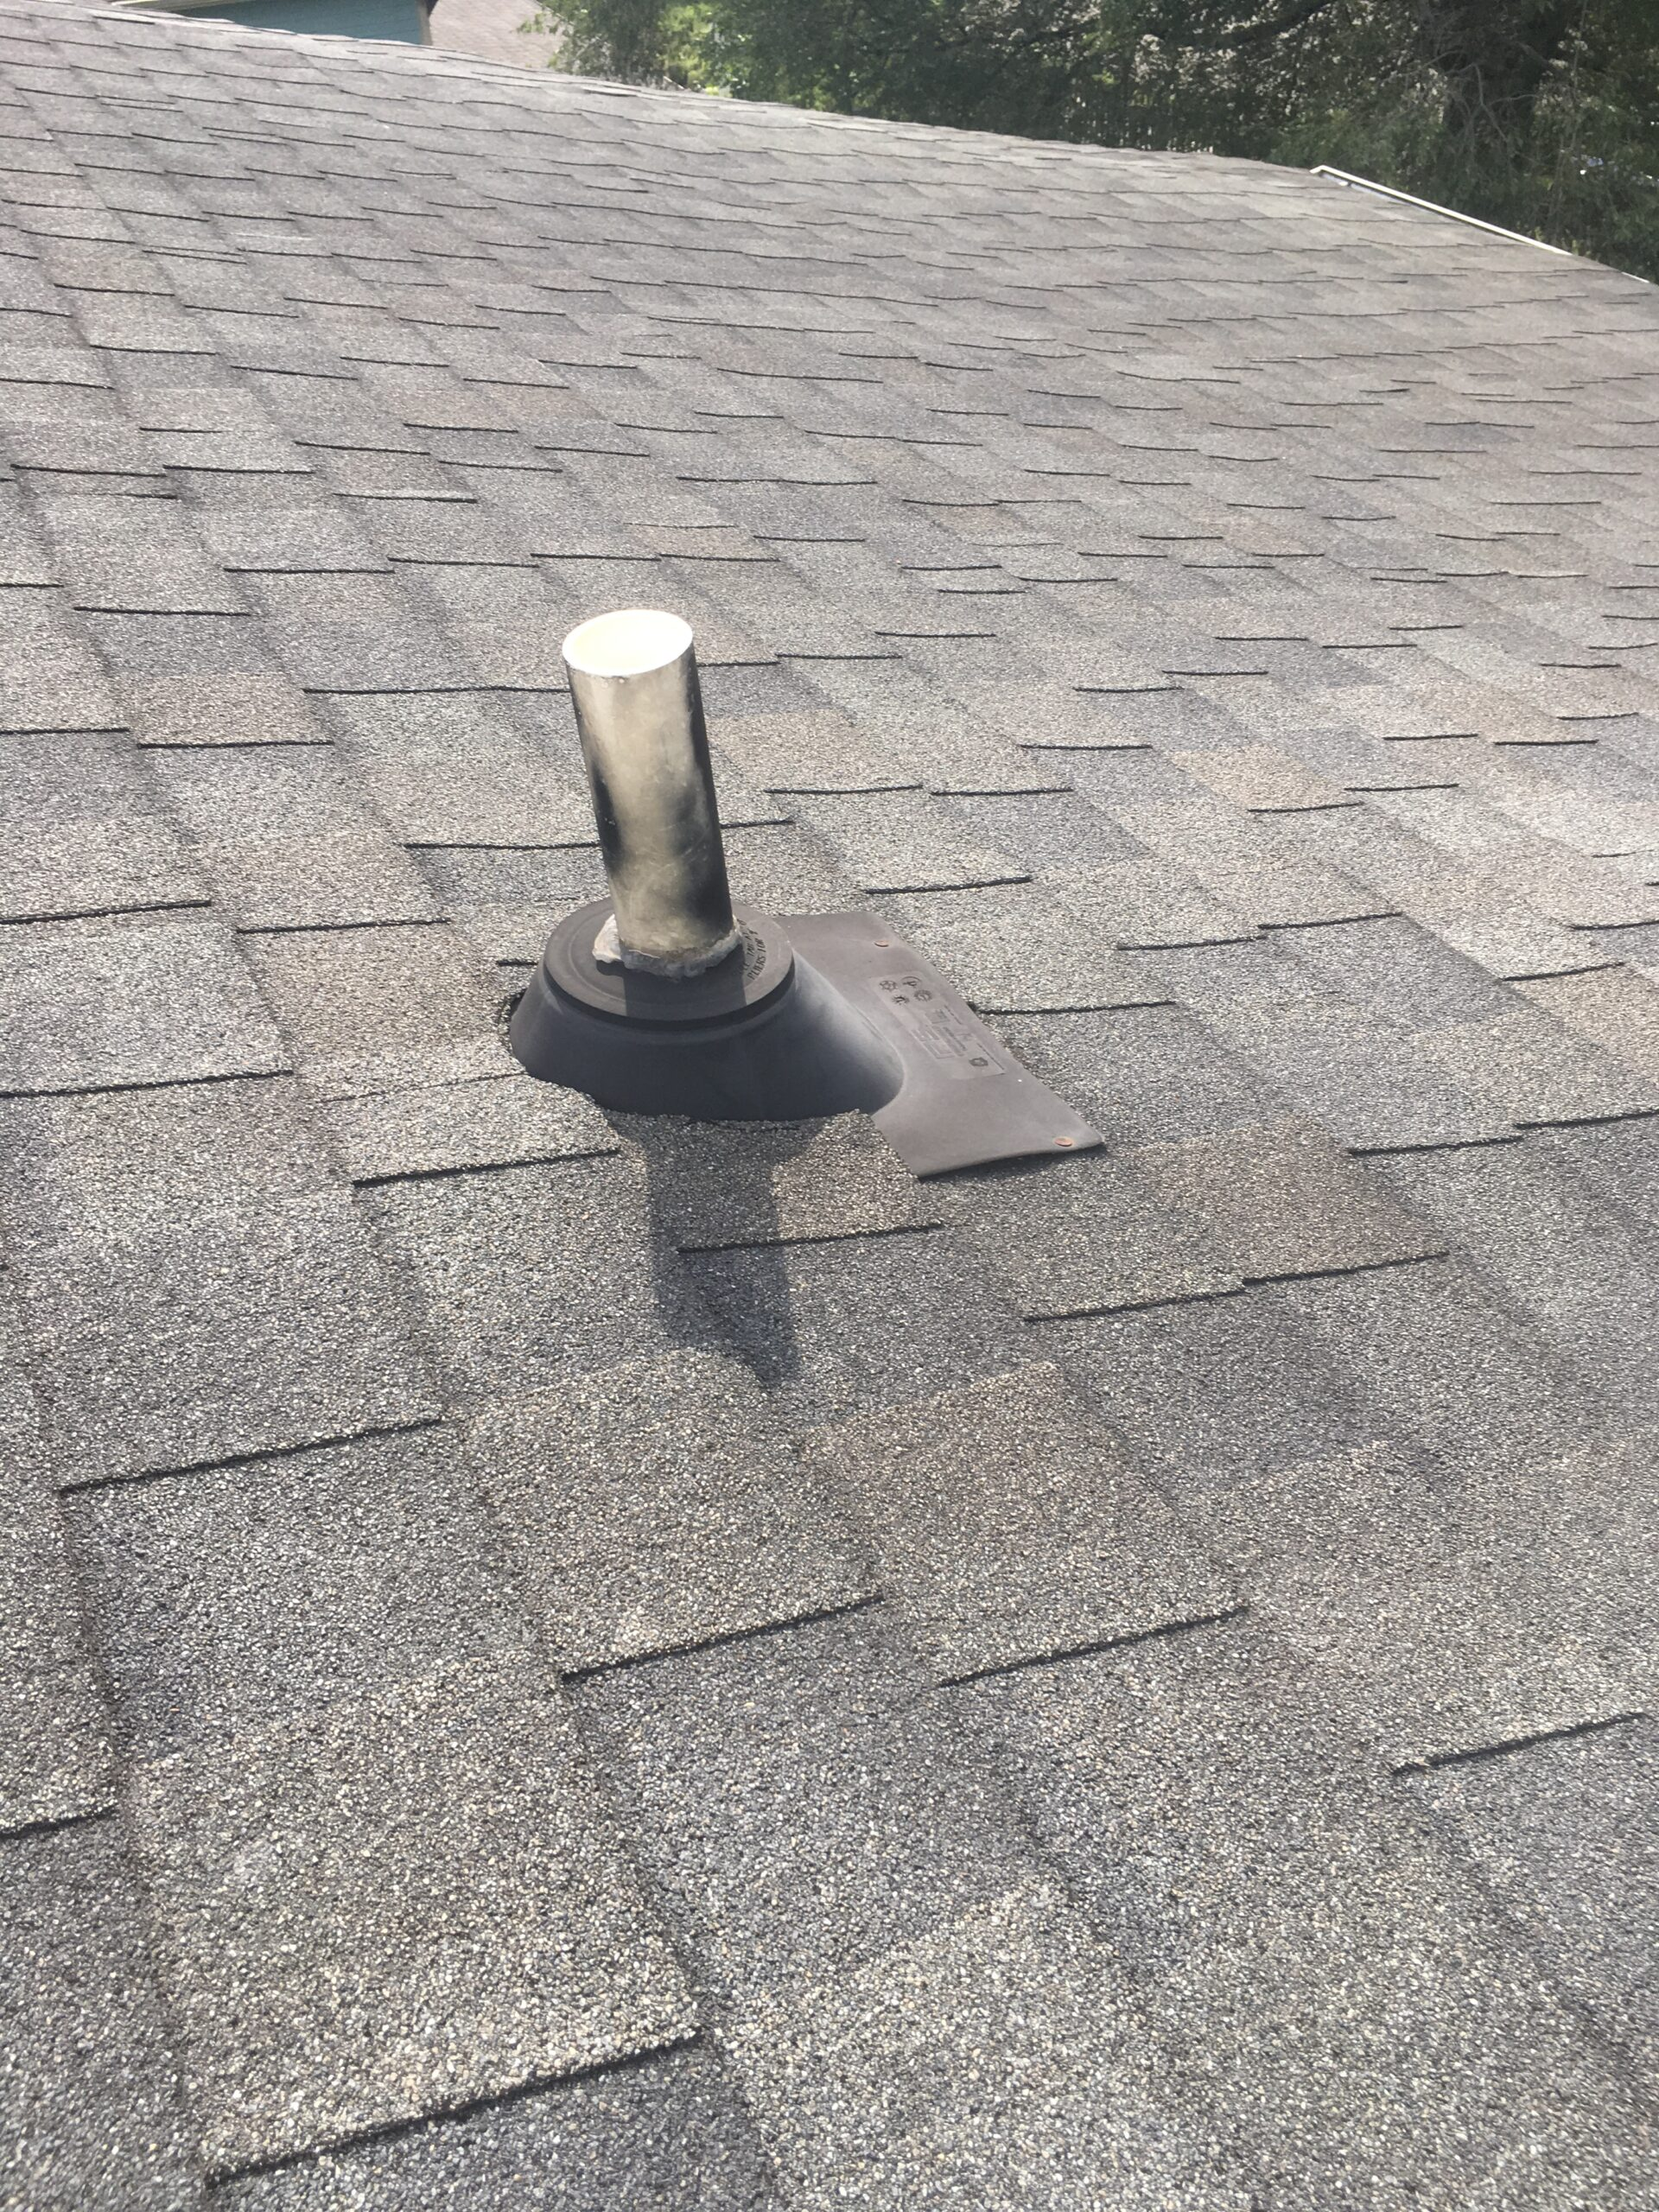 This is a picture of a pipe boot on a section of roof that will get solar panels